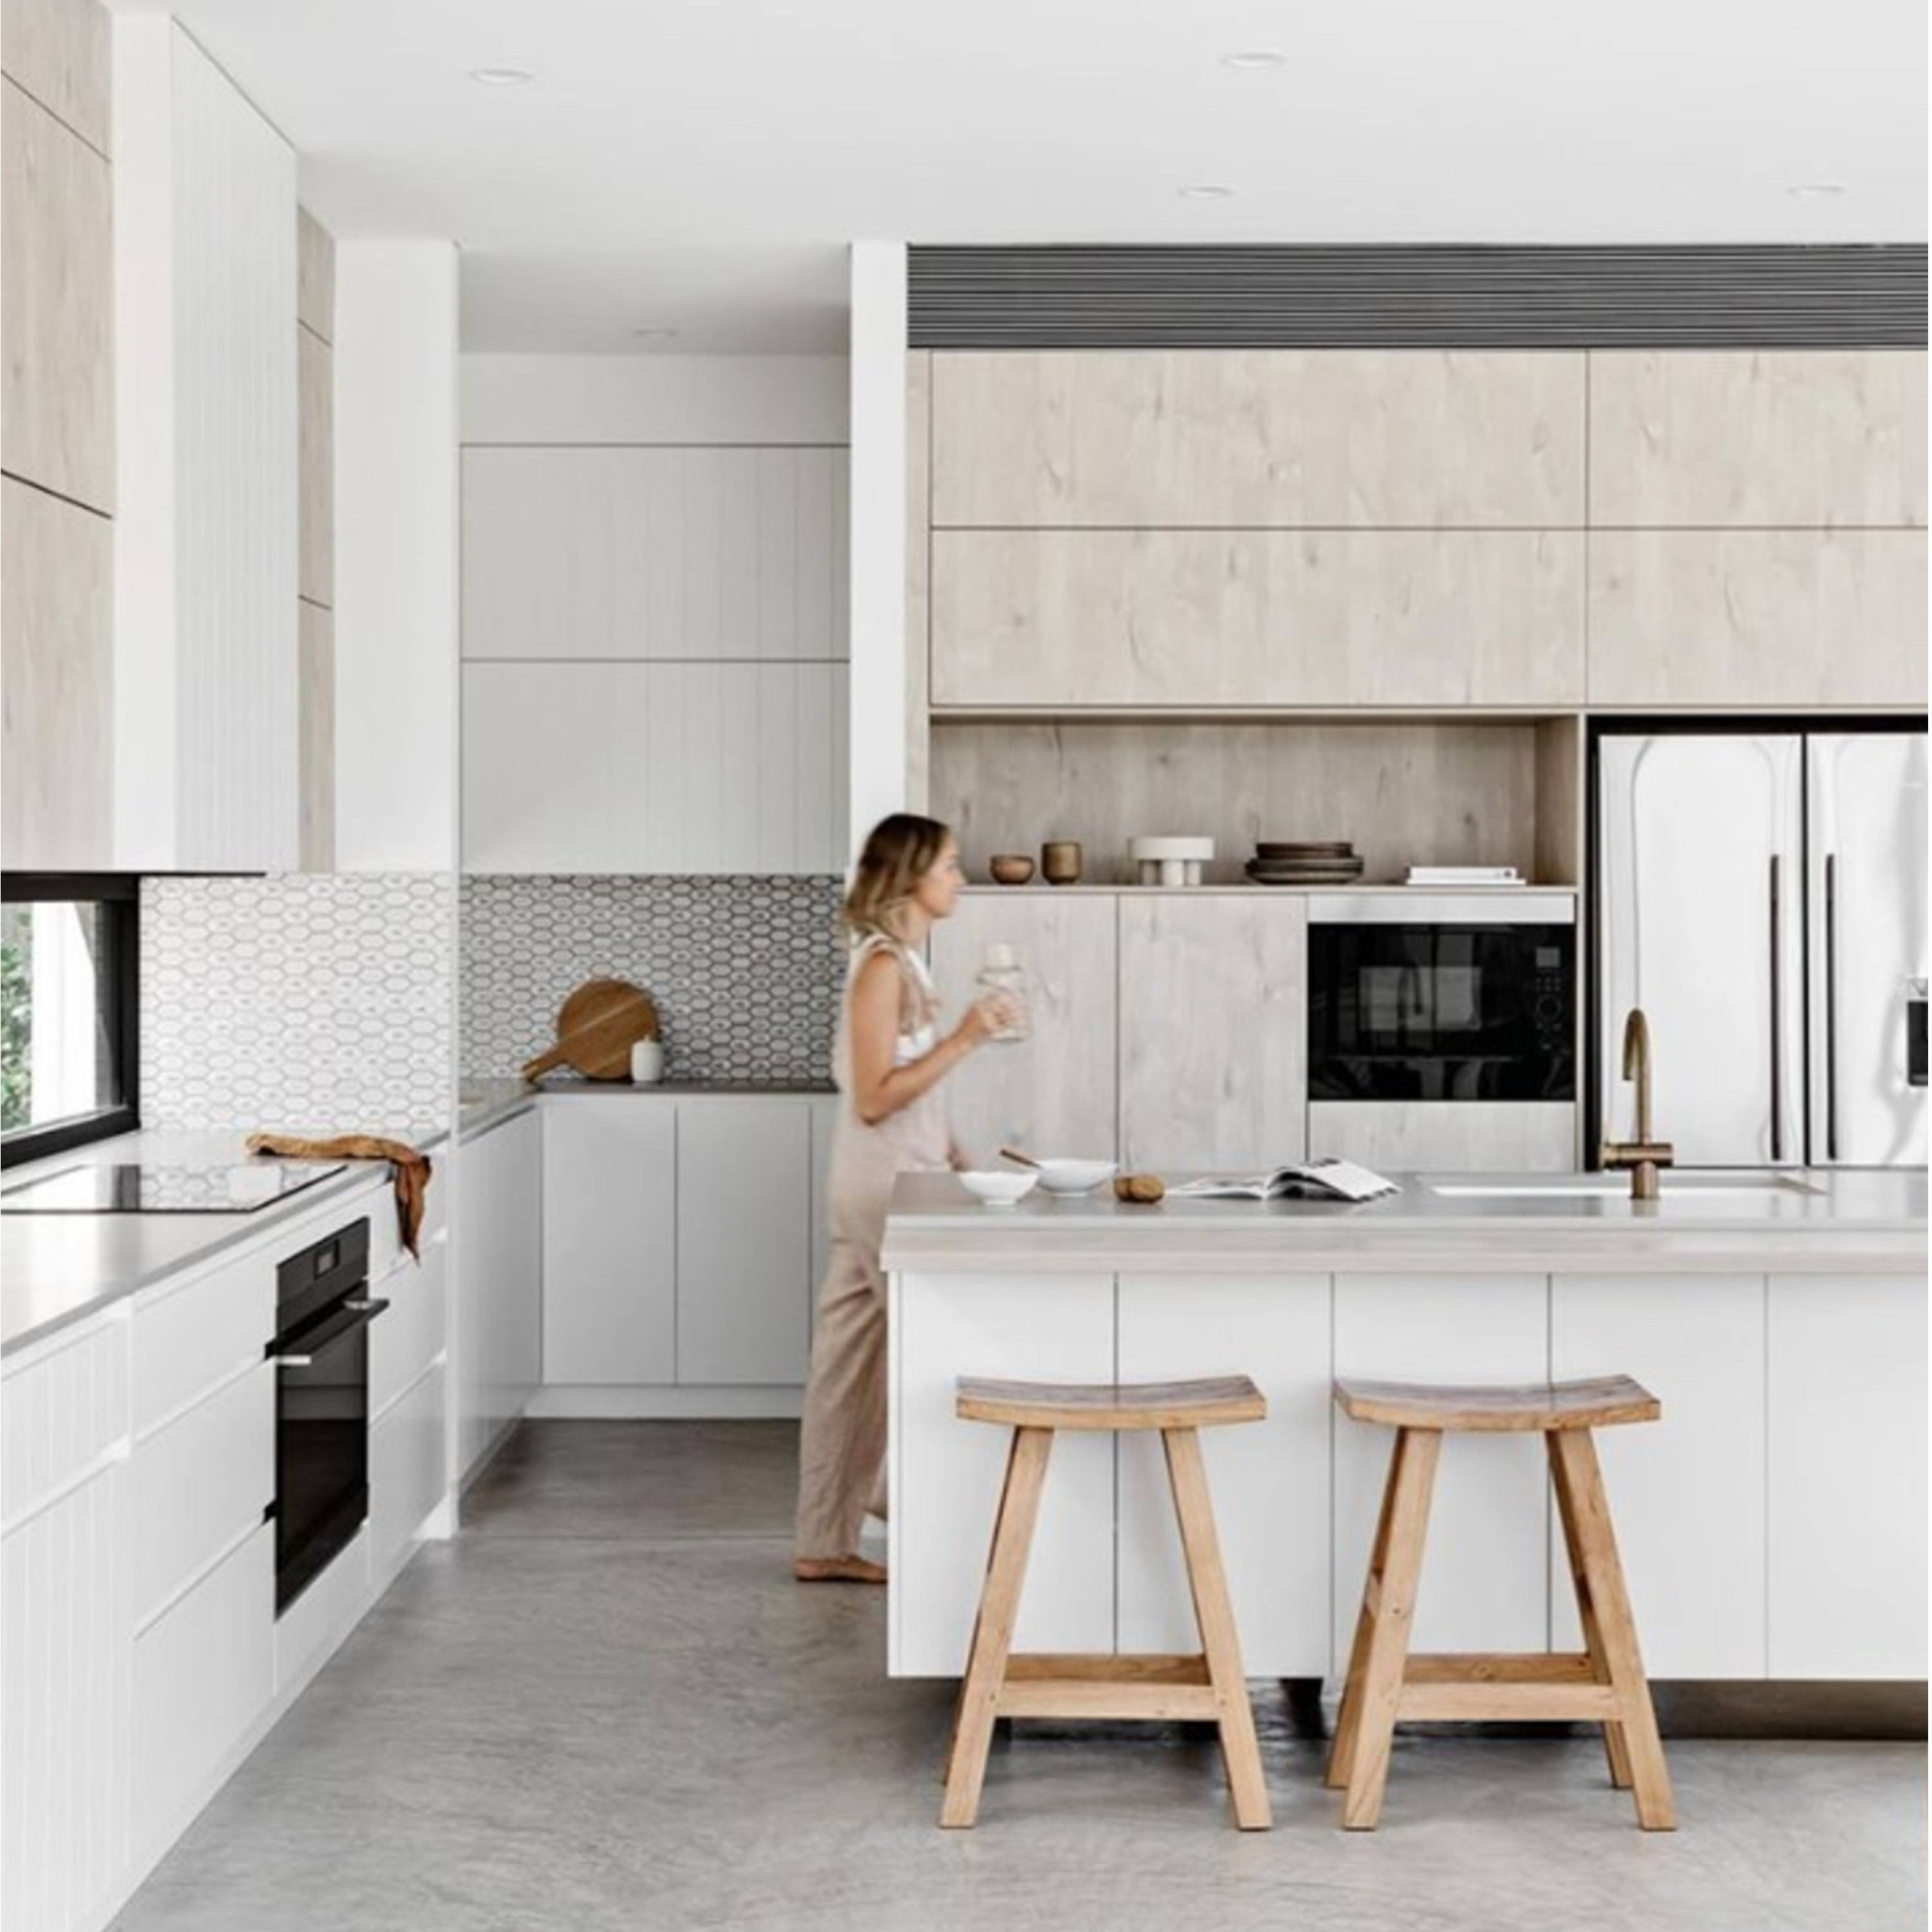 Timber Stools by INARTISAN - A kitchen setting with timber stools at the bench